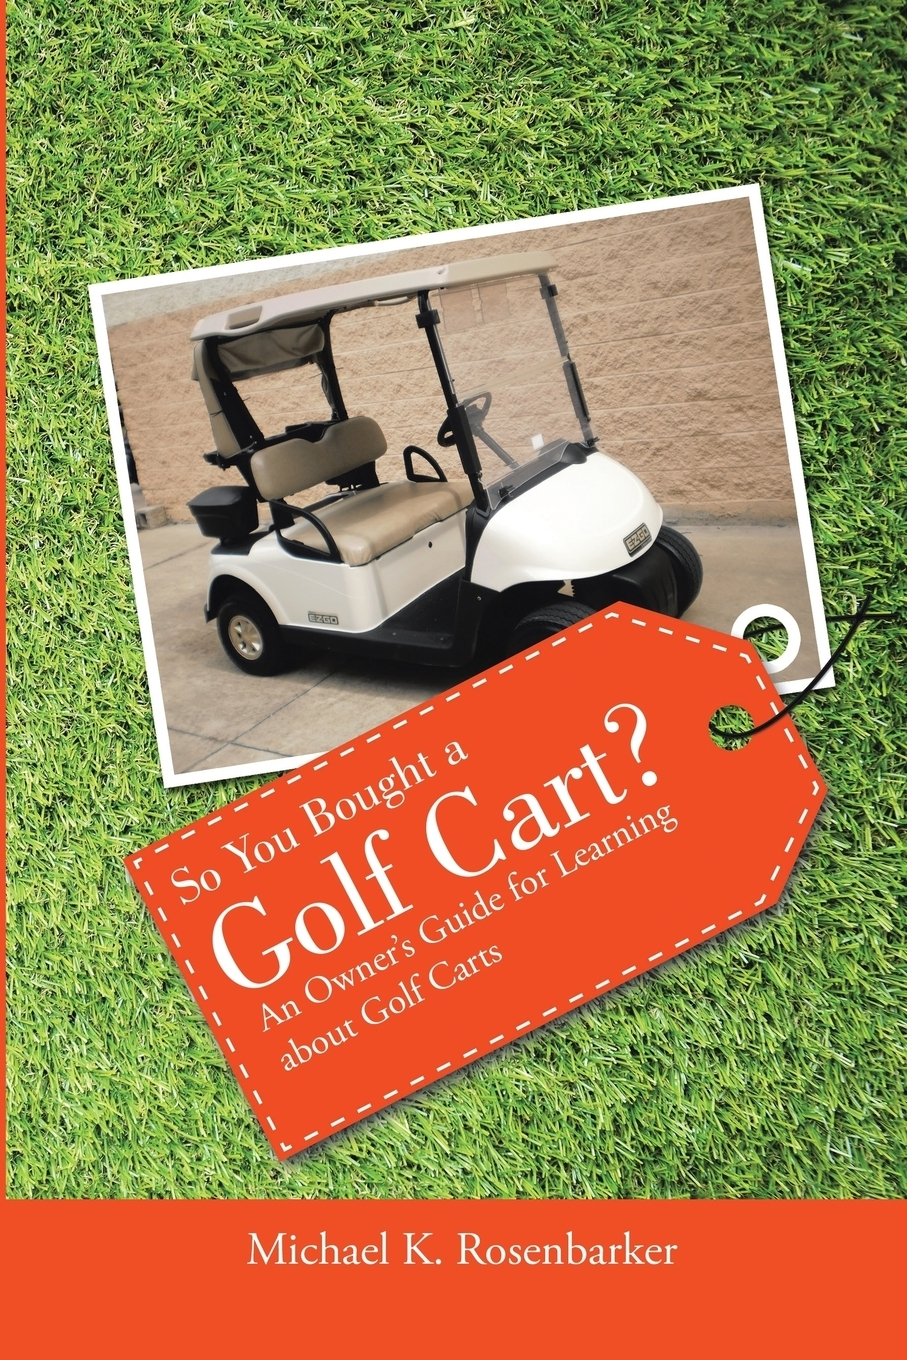 So You Bought a Golf Cart?. An Owner's Guide for Learning about Golf Carts